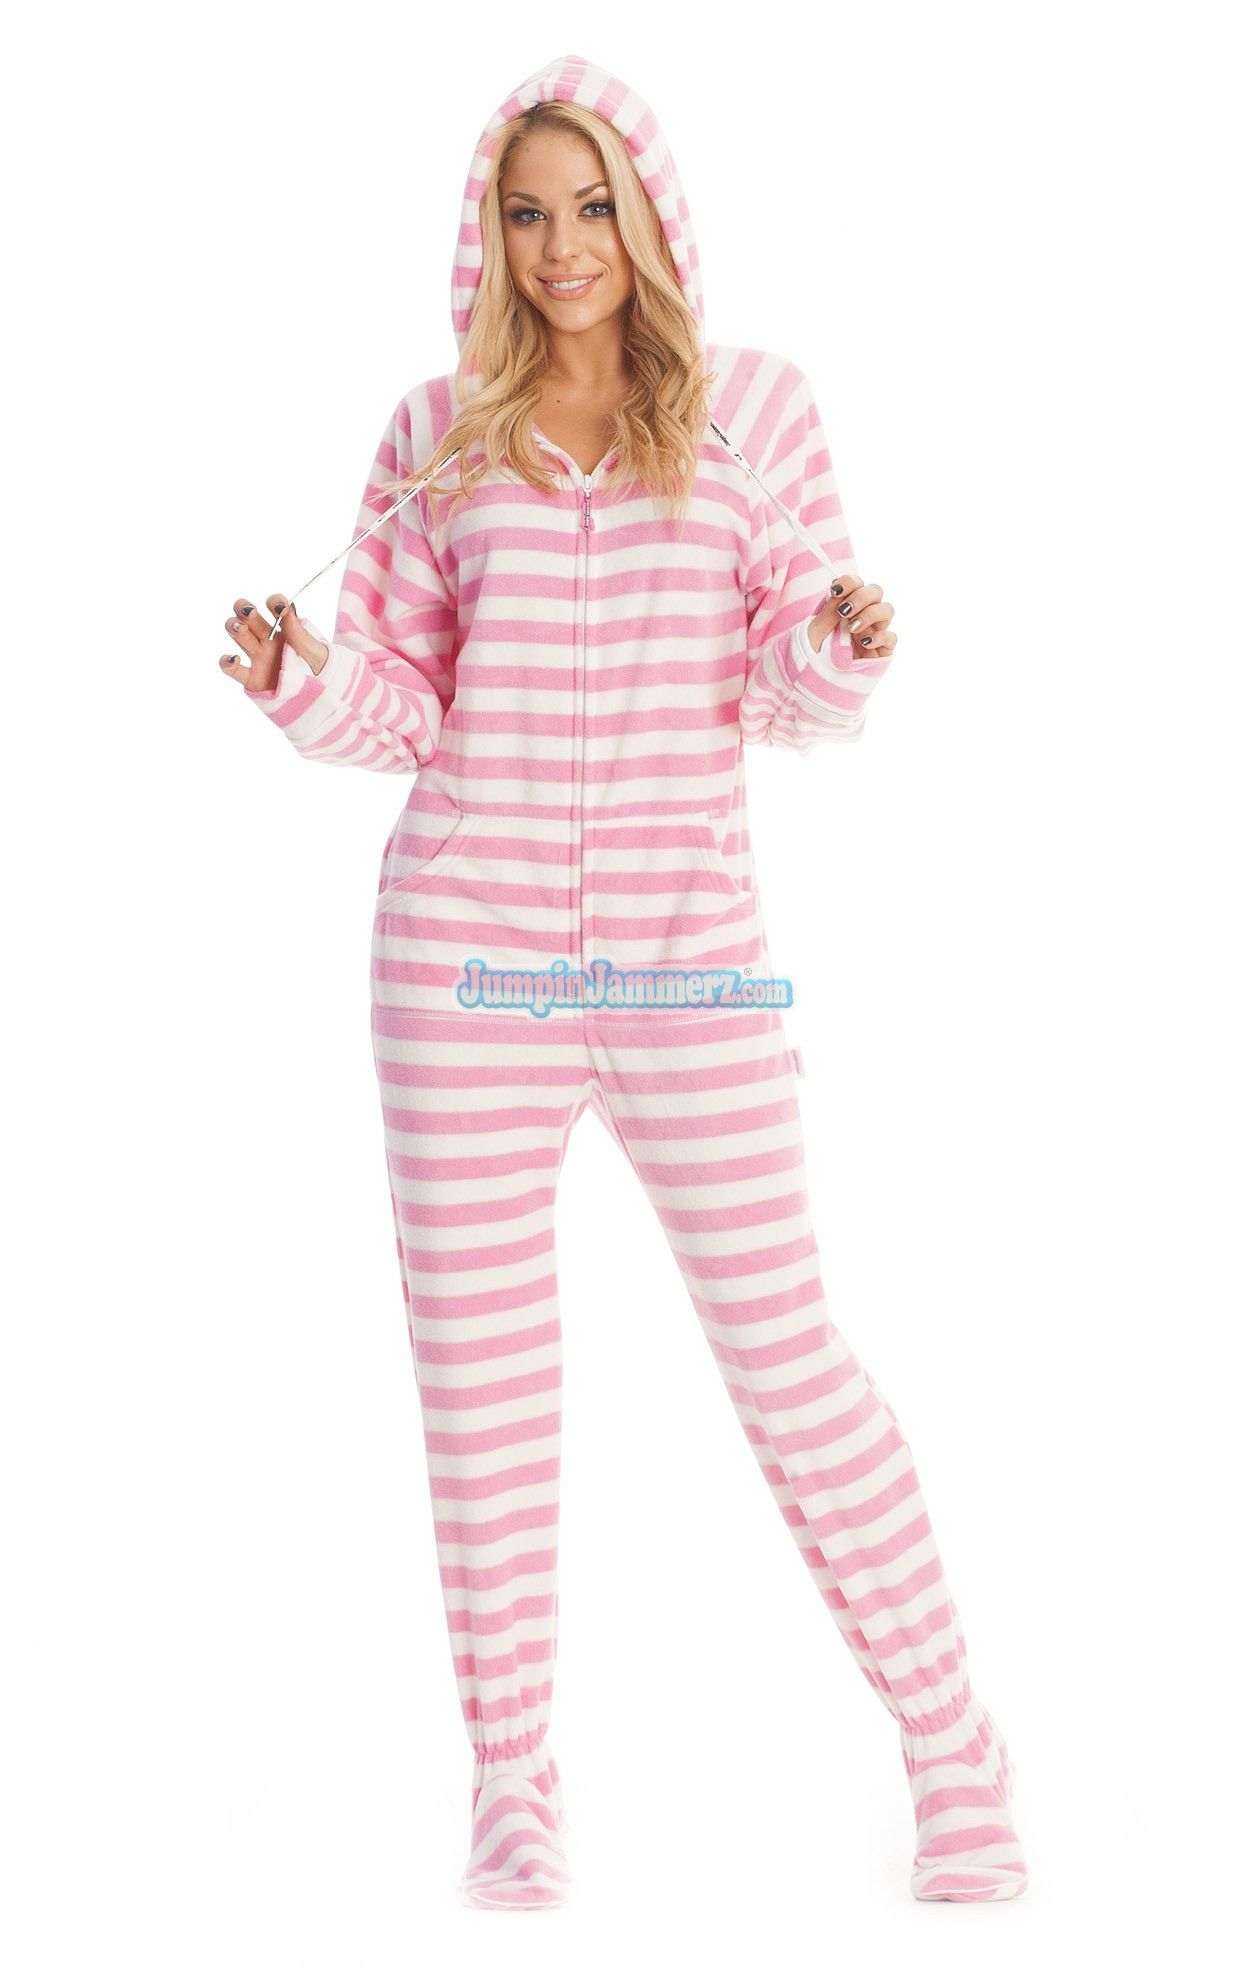 Adults and children alike can choose from various styles and characters such as Pikachu, Disney, Piplup, Hello Kitty, Animals, Winnie the pooh, Stitch, Unicorn onesie at our Wellpajamas online store. There are also kids onesies pajamas, and adult kigurumi including the couple ones that come in different color and styles.